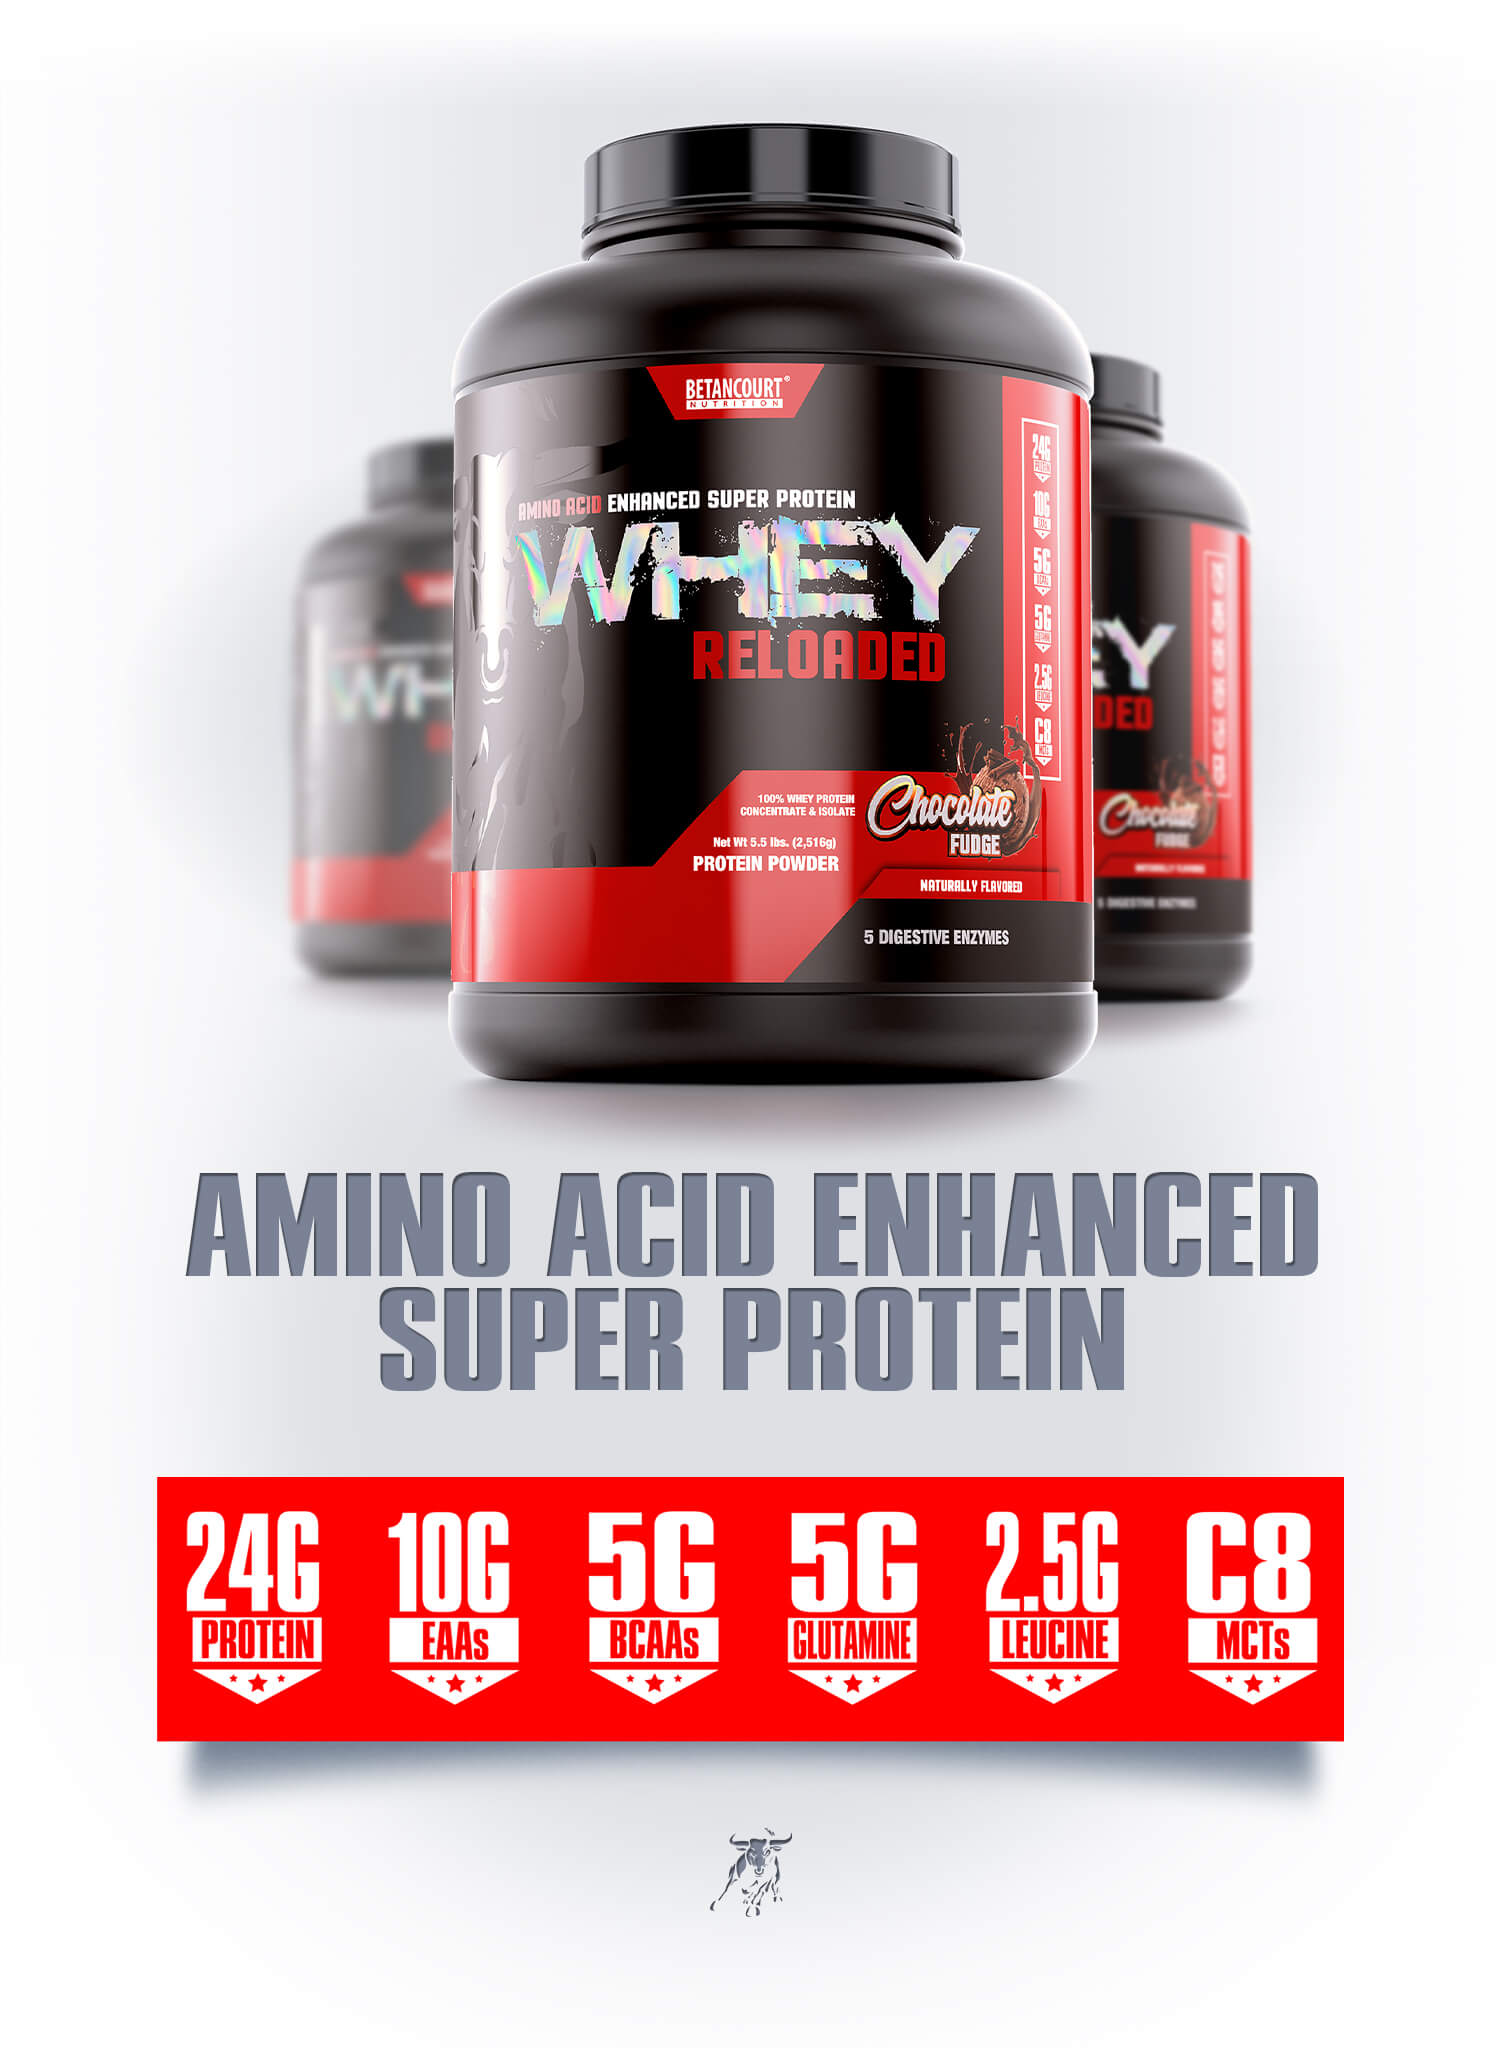 Whey Reloaded - Betancourt Nutrition - Amino Acid Enhanced Super Protein